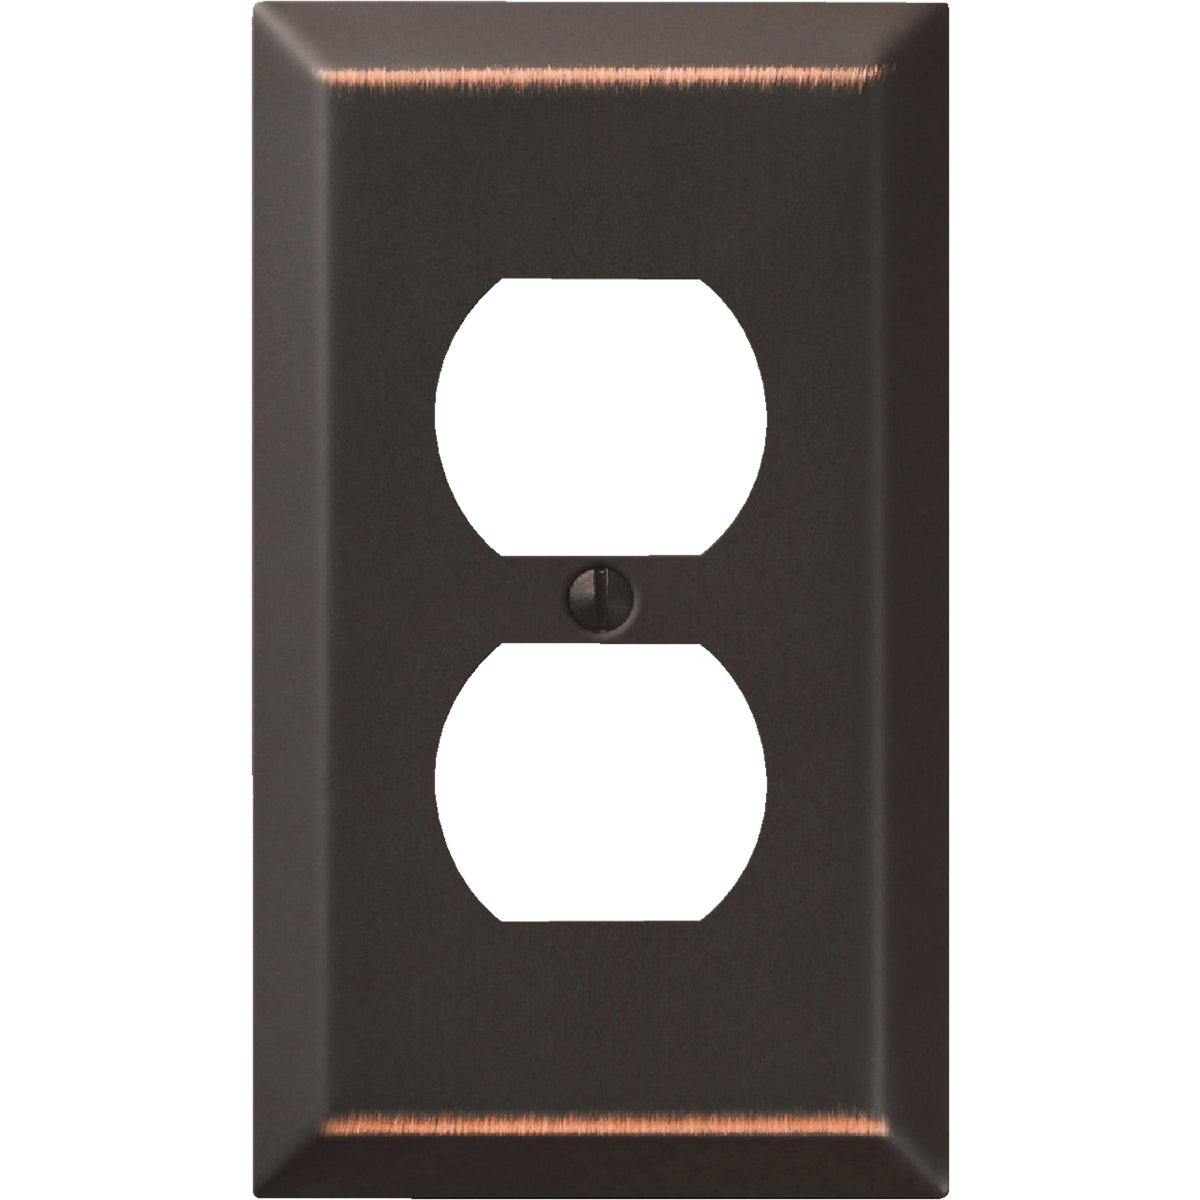 1ABRZ OUTLT WALLPLATE - 9AZ108 by Jackson Deerfield Mf